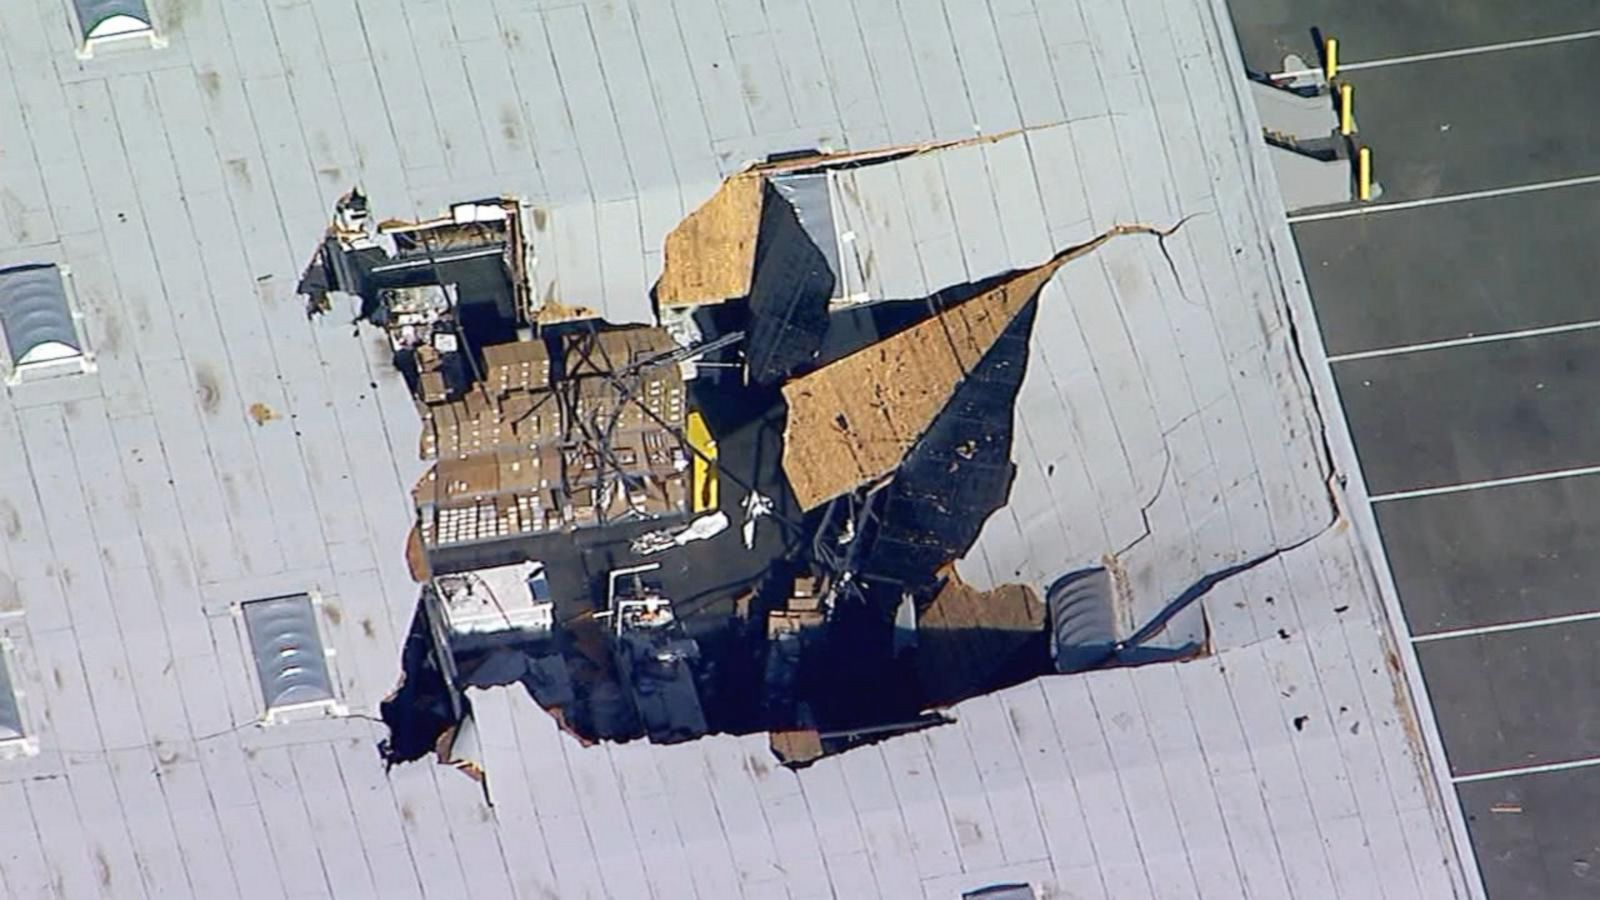 F-16 was armed when it crashed into building near runway at